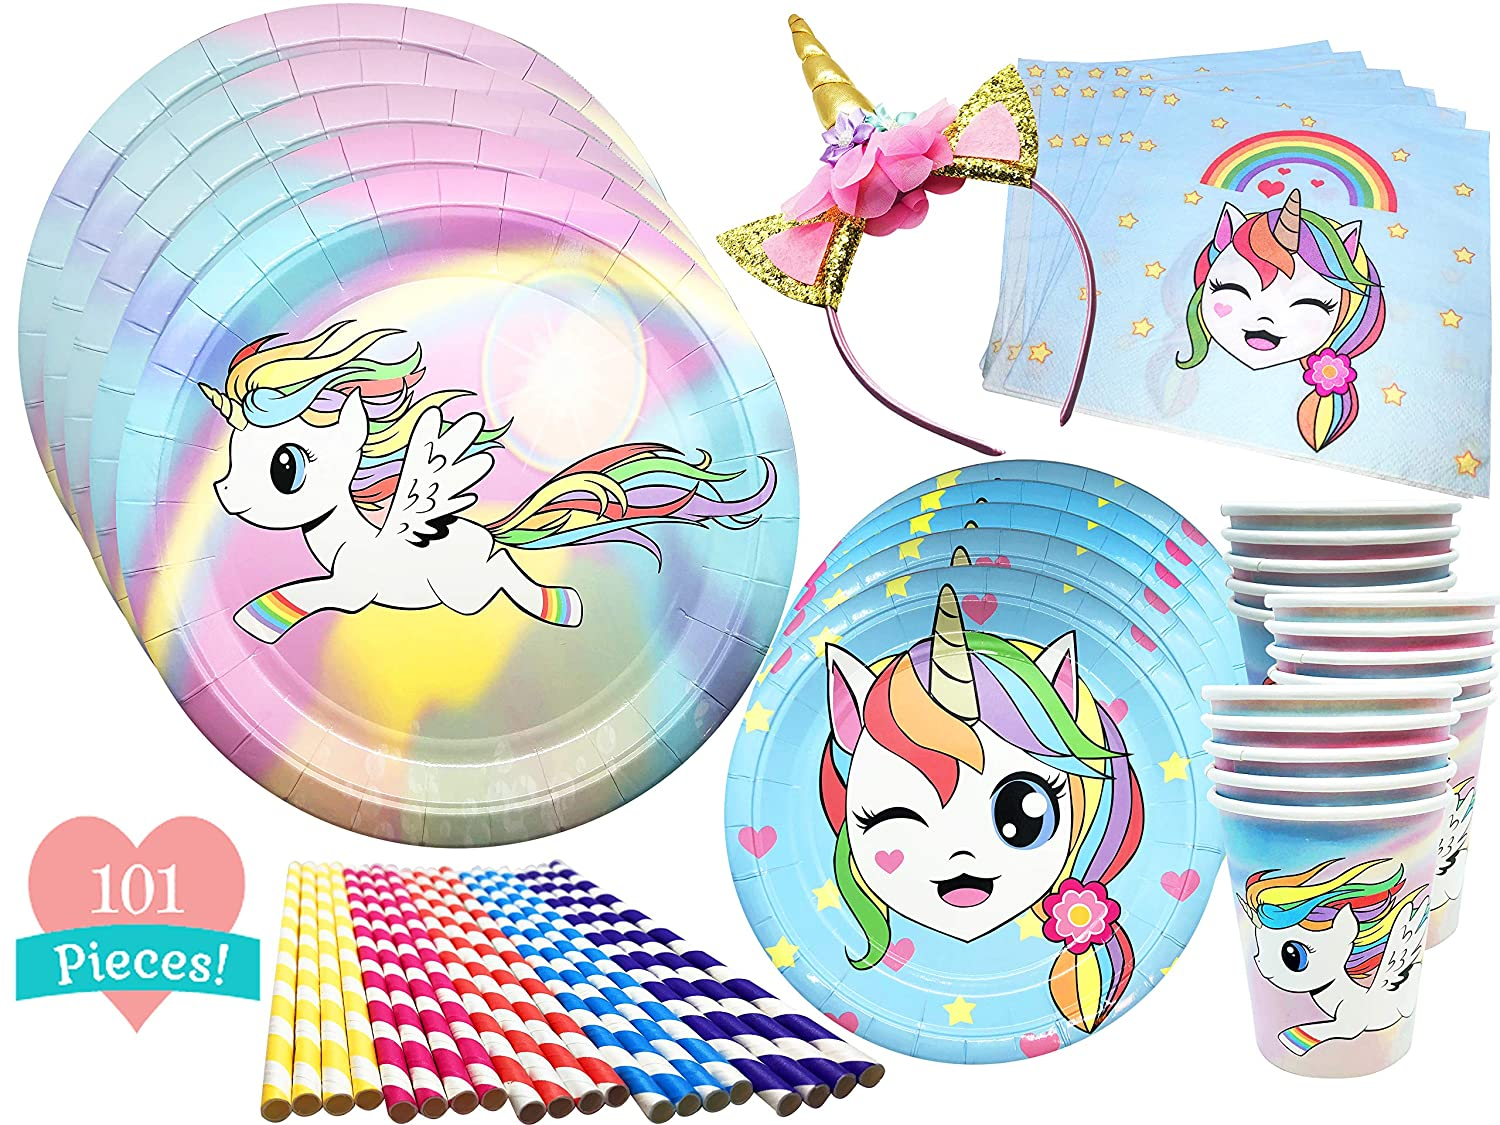 and Rainbow Straws 101 Piece Birthday Set Serves 20 Includes Colorful Plates Unicorn Party Supplies Set with BONUS Pink and Gold Unicorn Headband by So Little So Cute Napkins Cups